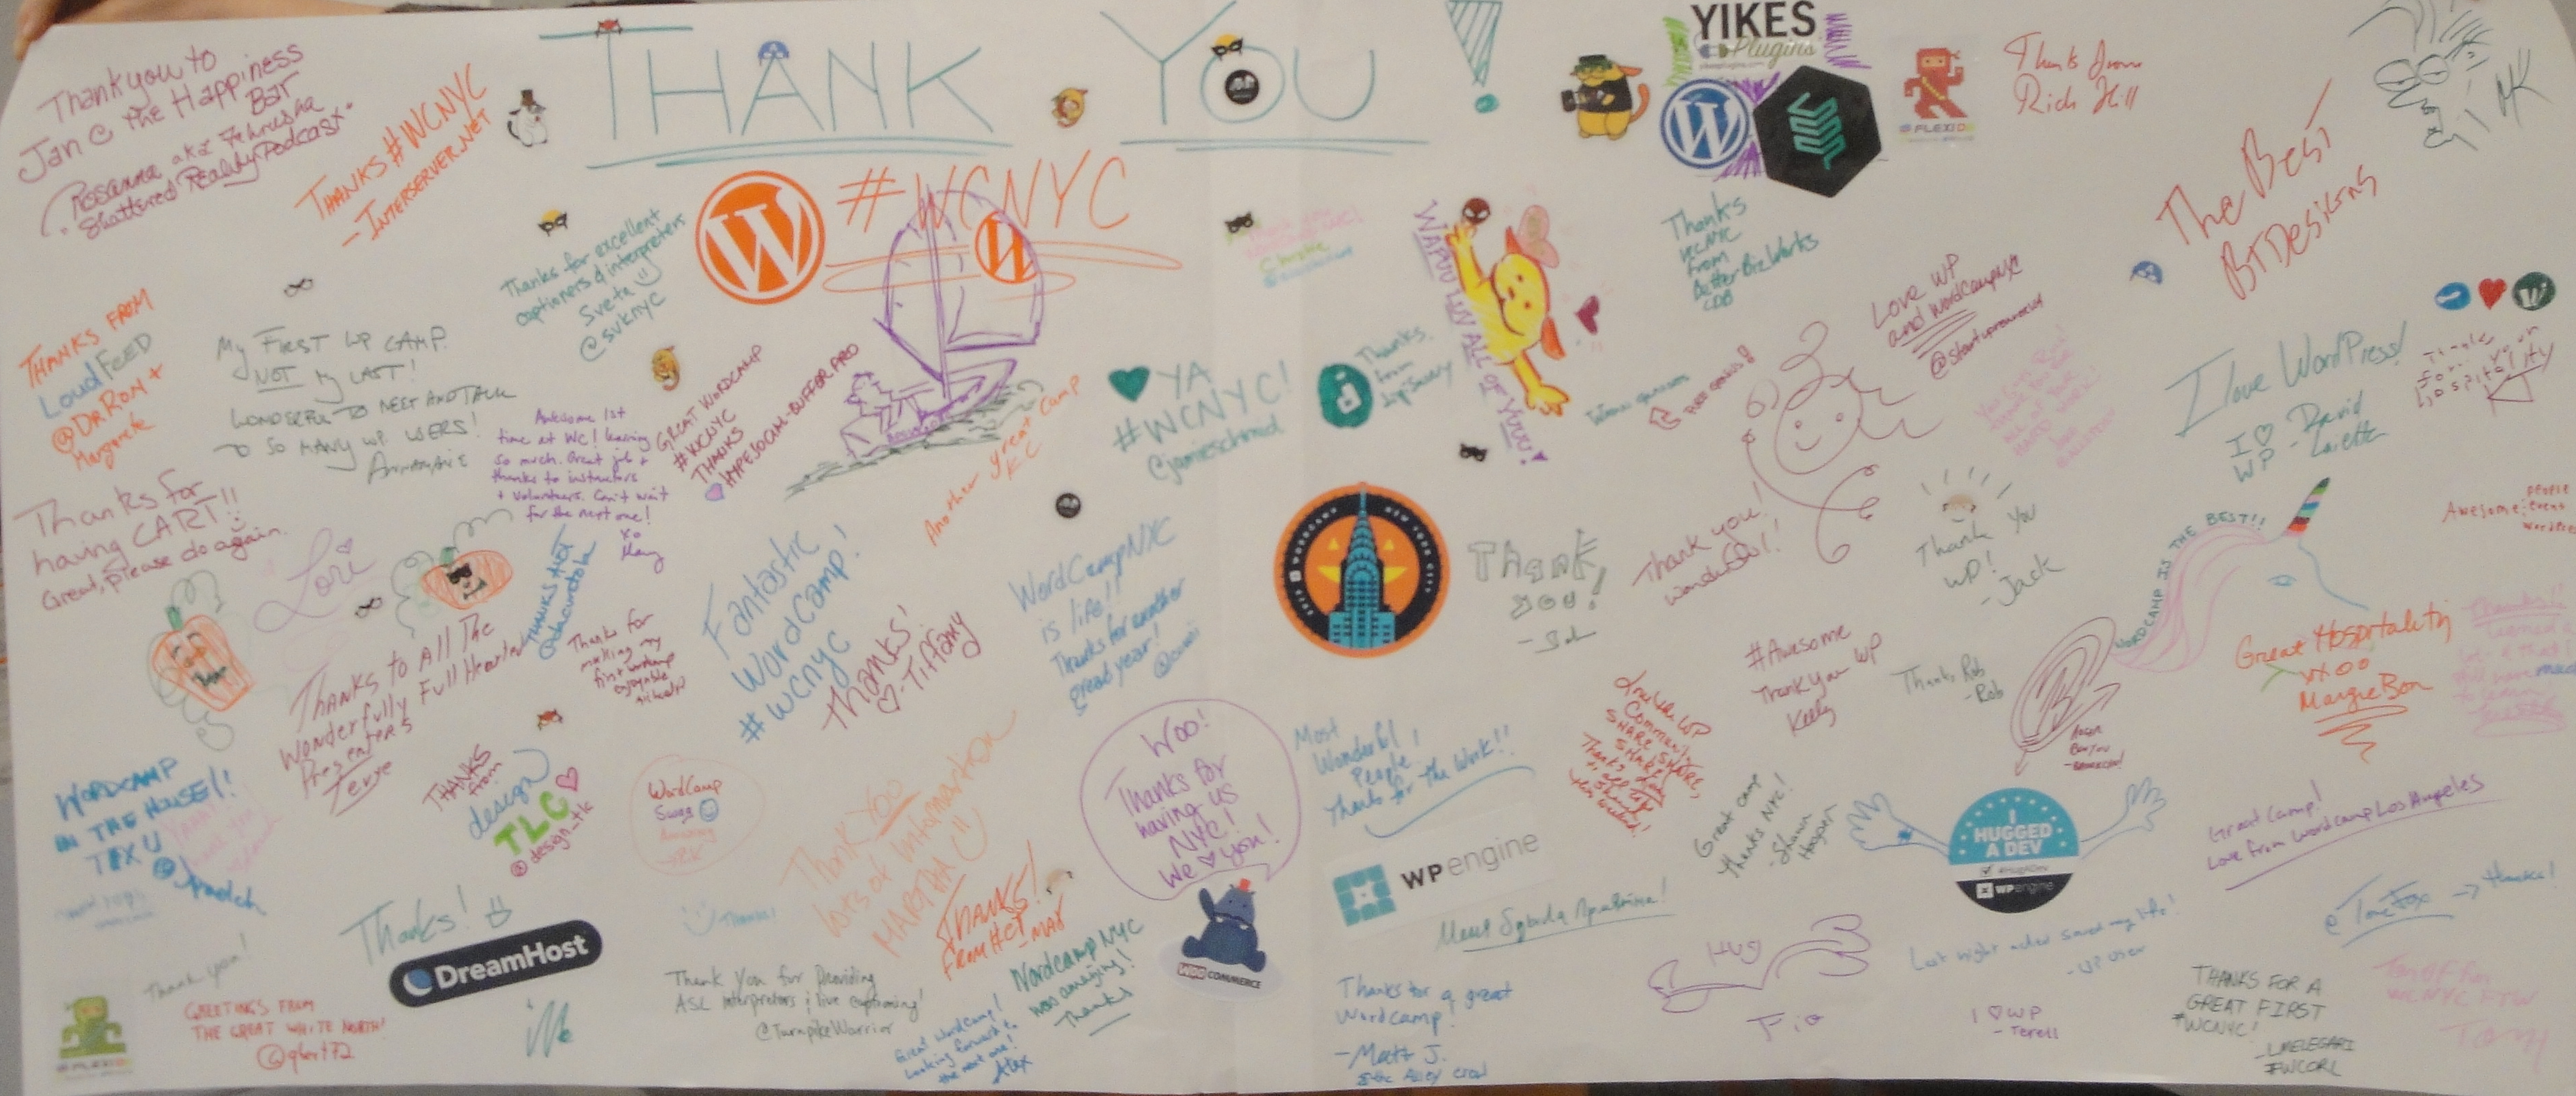 thank-you-wcnyc-sign